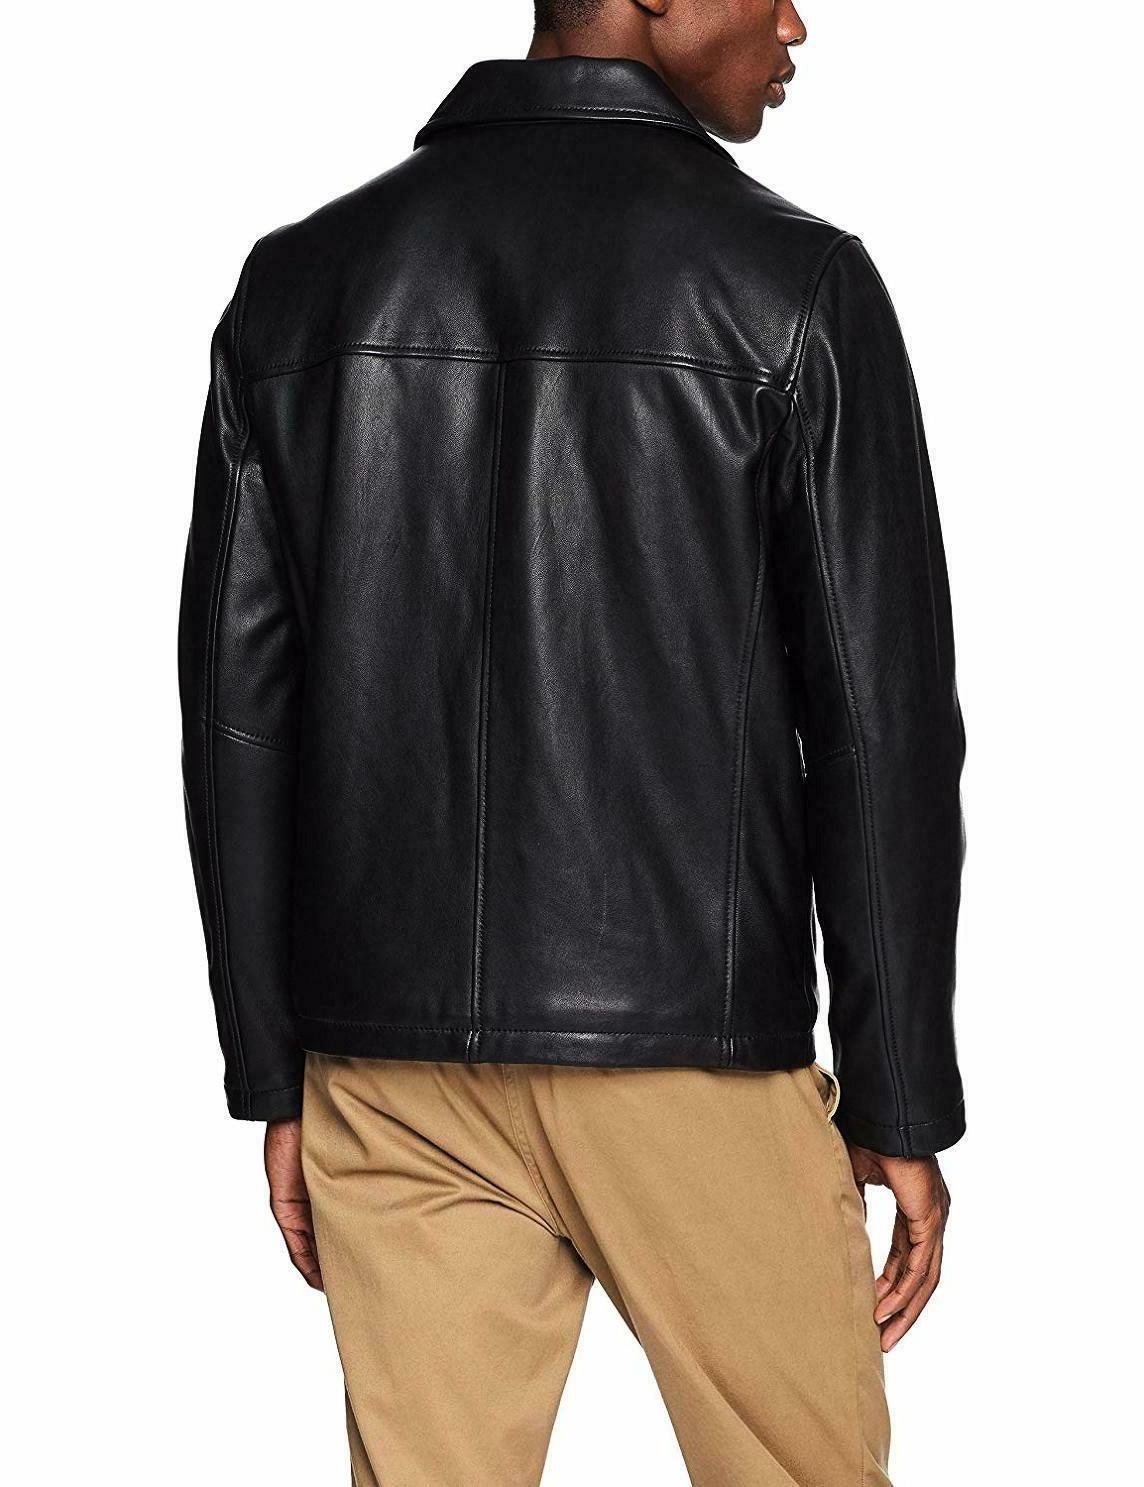 Tommy Hilfiger Mens Leather Jacket With Shirt Collar Black 153A2850